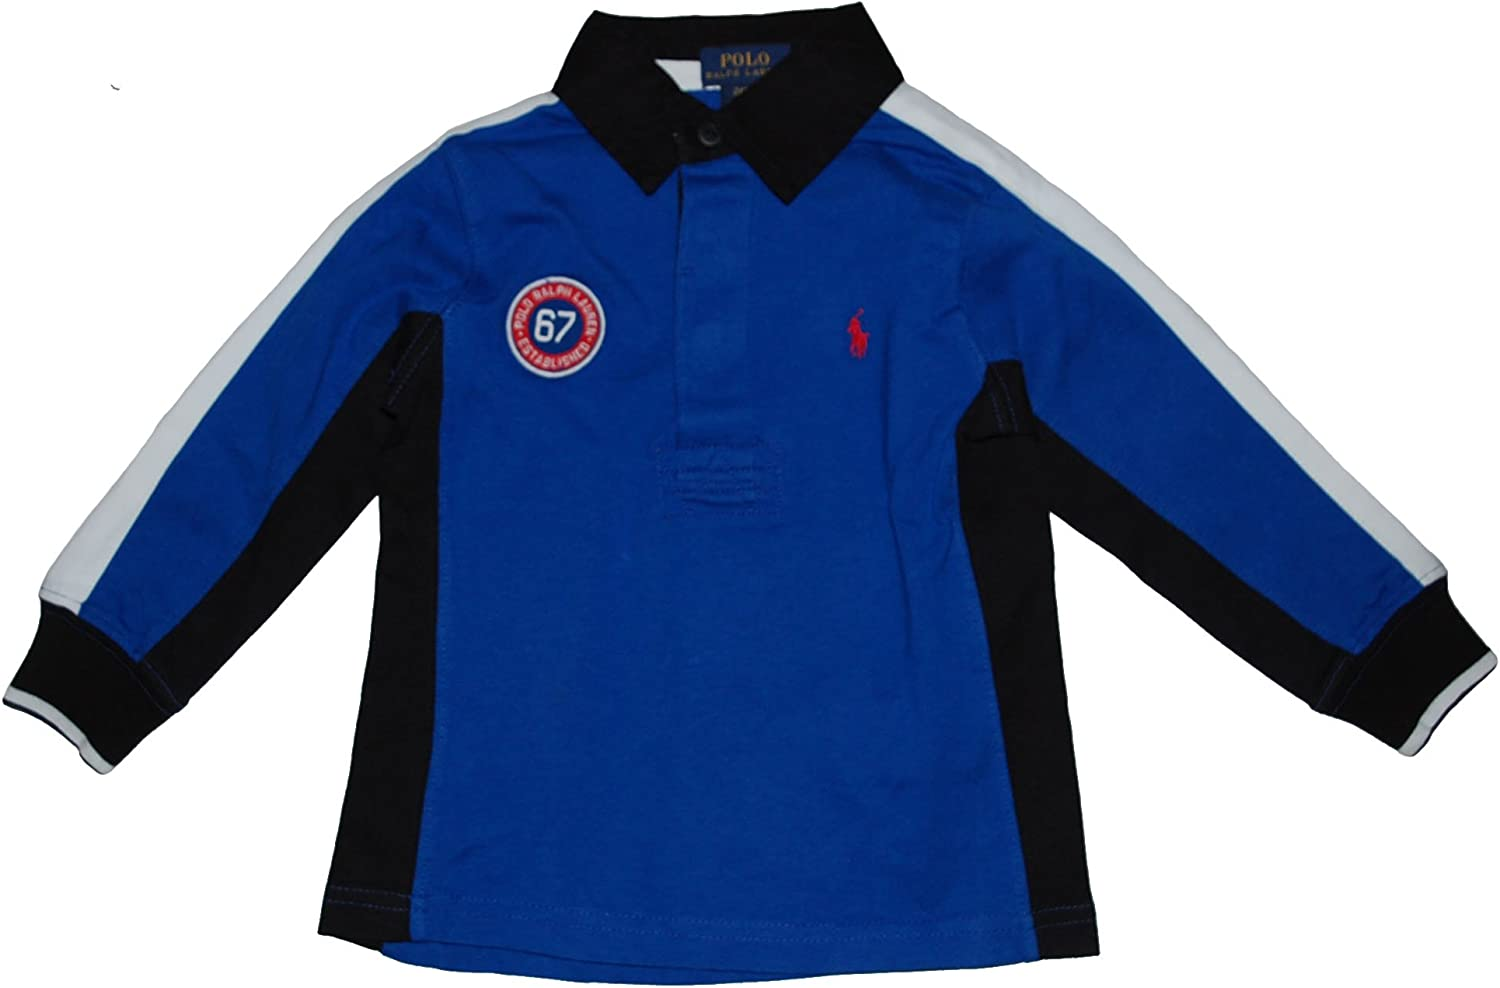 Ralph Lauren Polo Boys Long Sleeve Crested Rugby Shirt (2 2T)